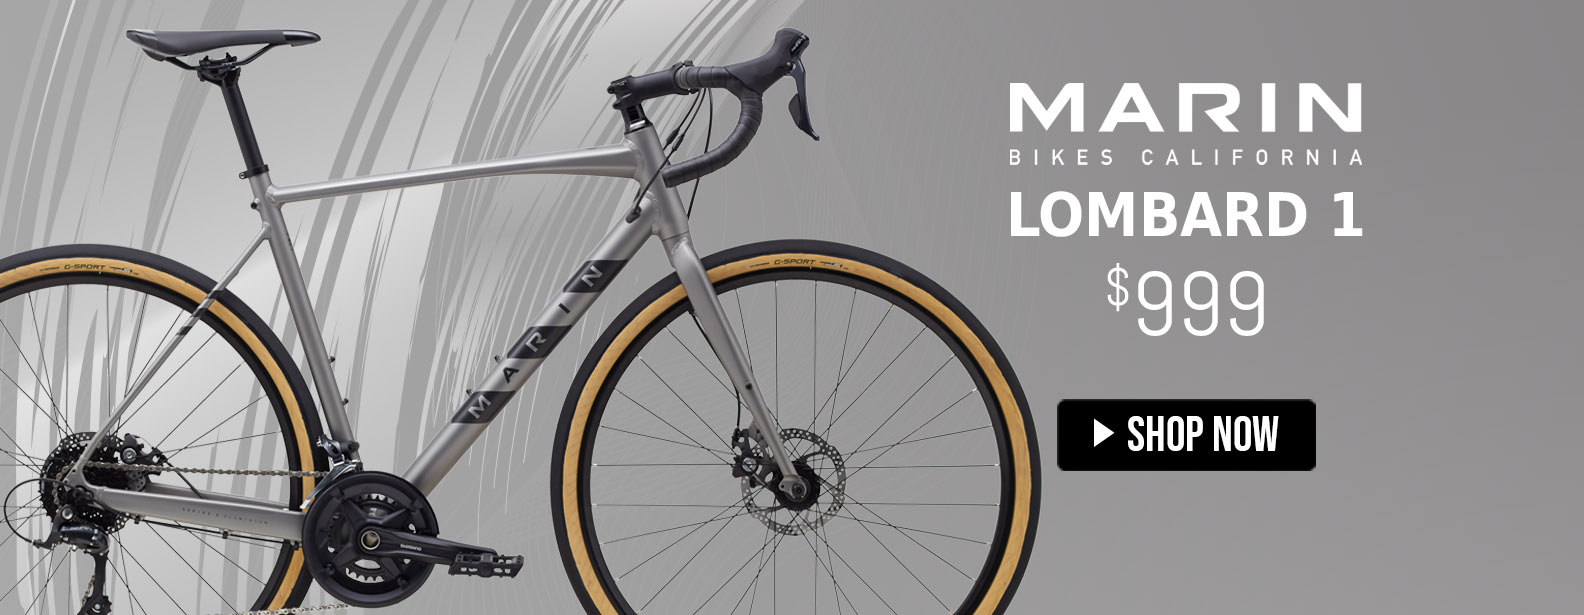 Buy Marin Lombard 1 Bike